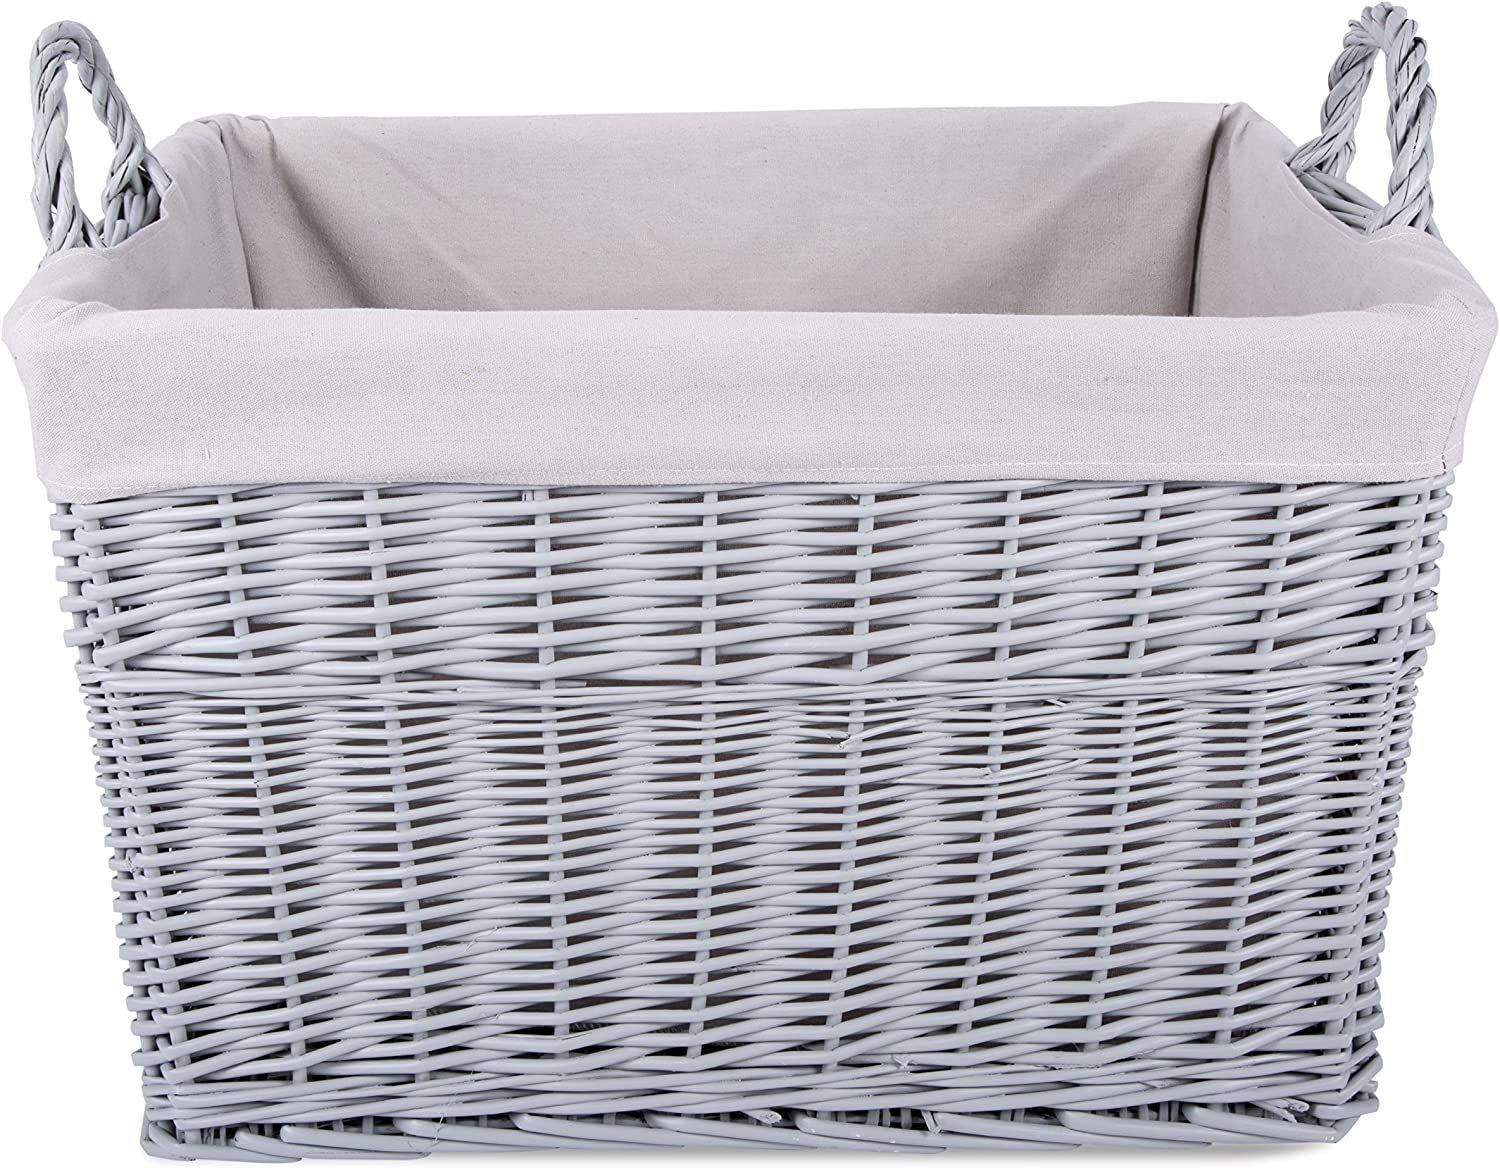 Home Storage Grey Painted Rectangule Wicker Basket Laundry Toys Baby Nursery Collection Box (Medium)